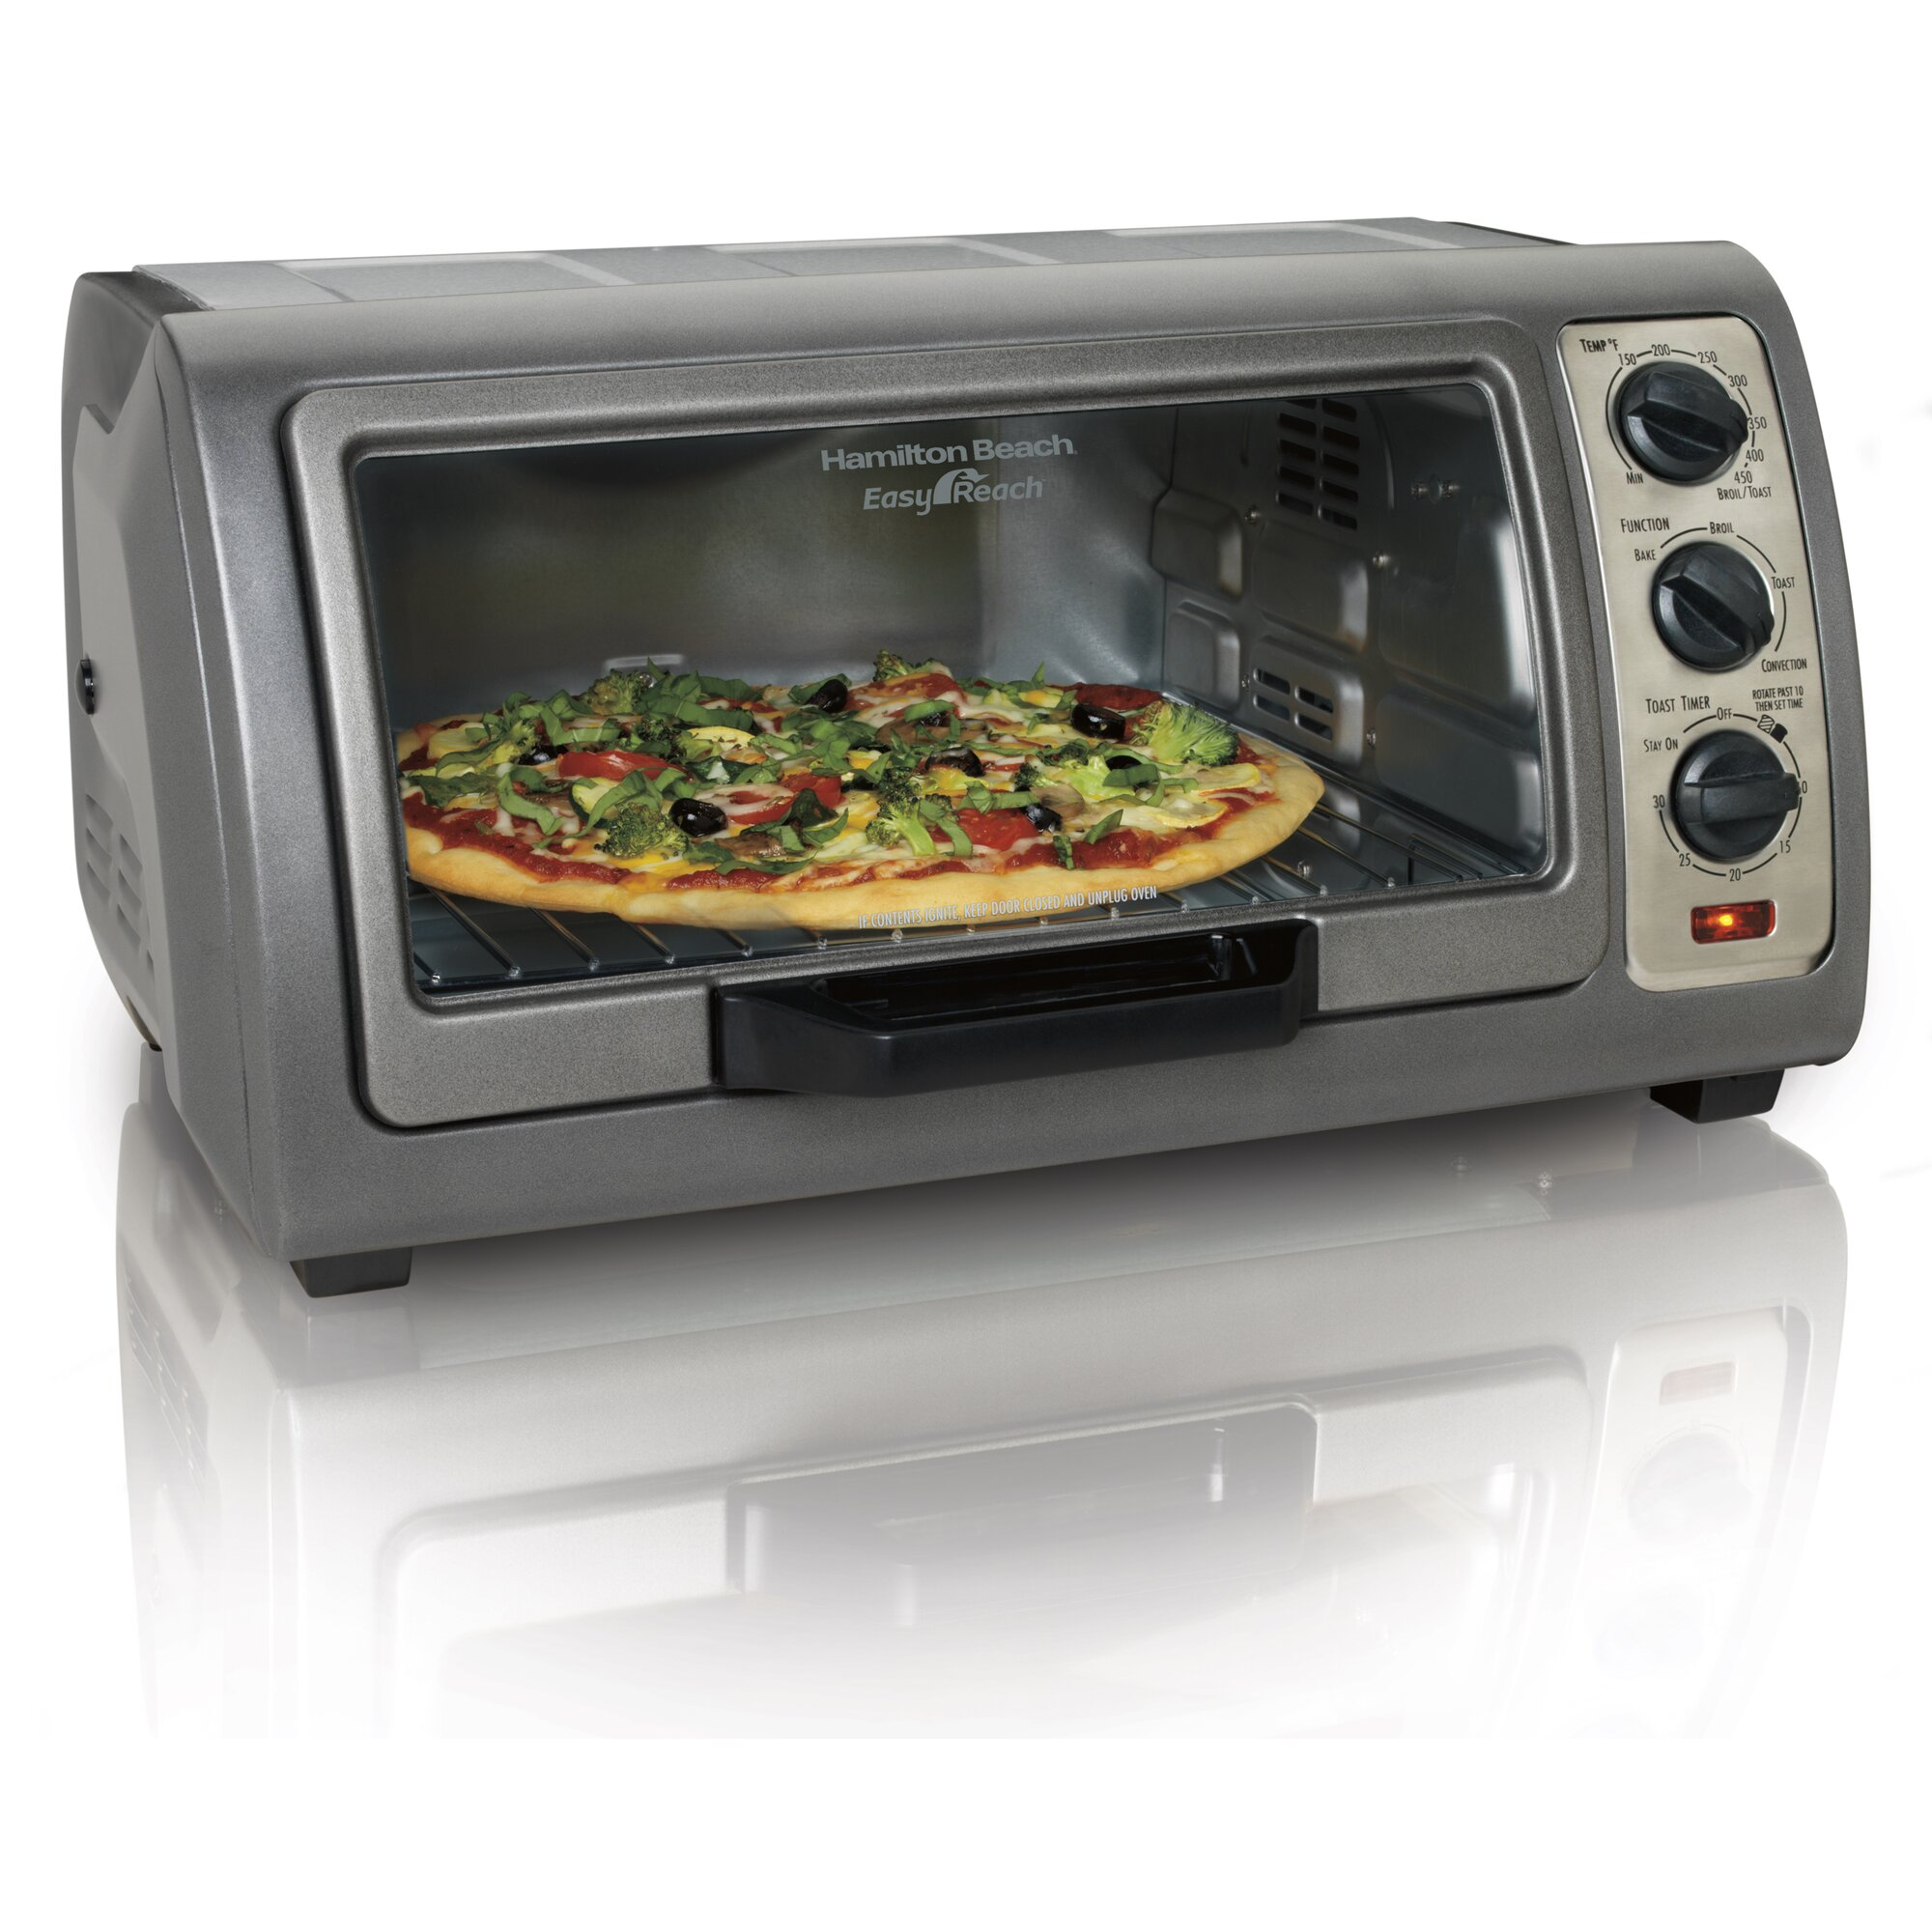 Easy Reach Toaster Oven With Convection